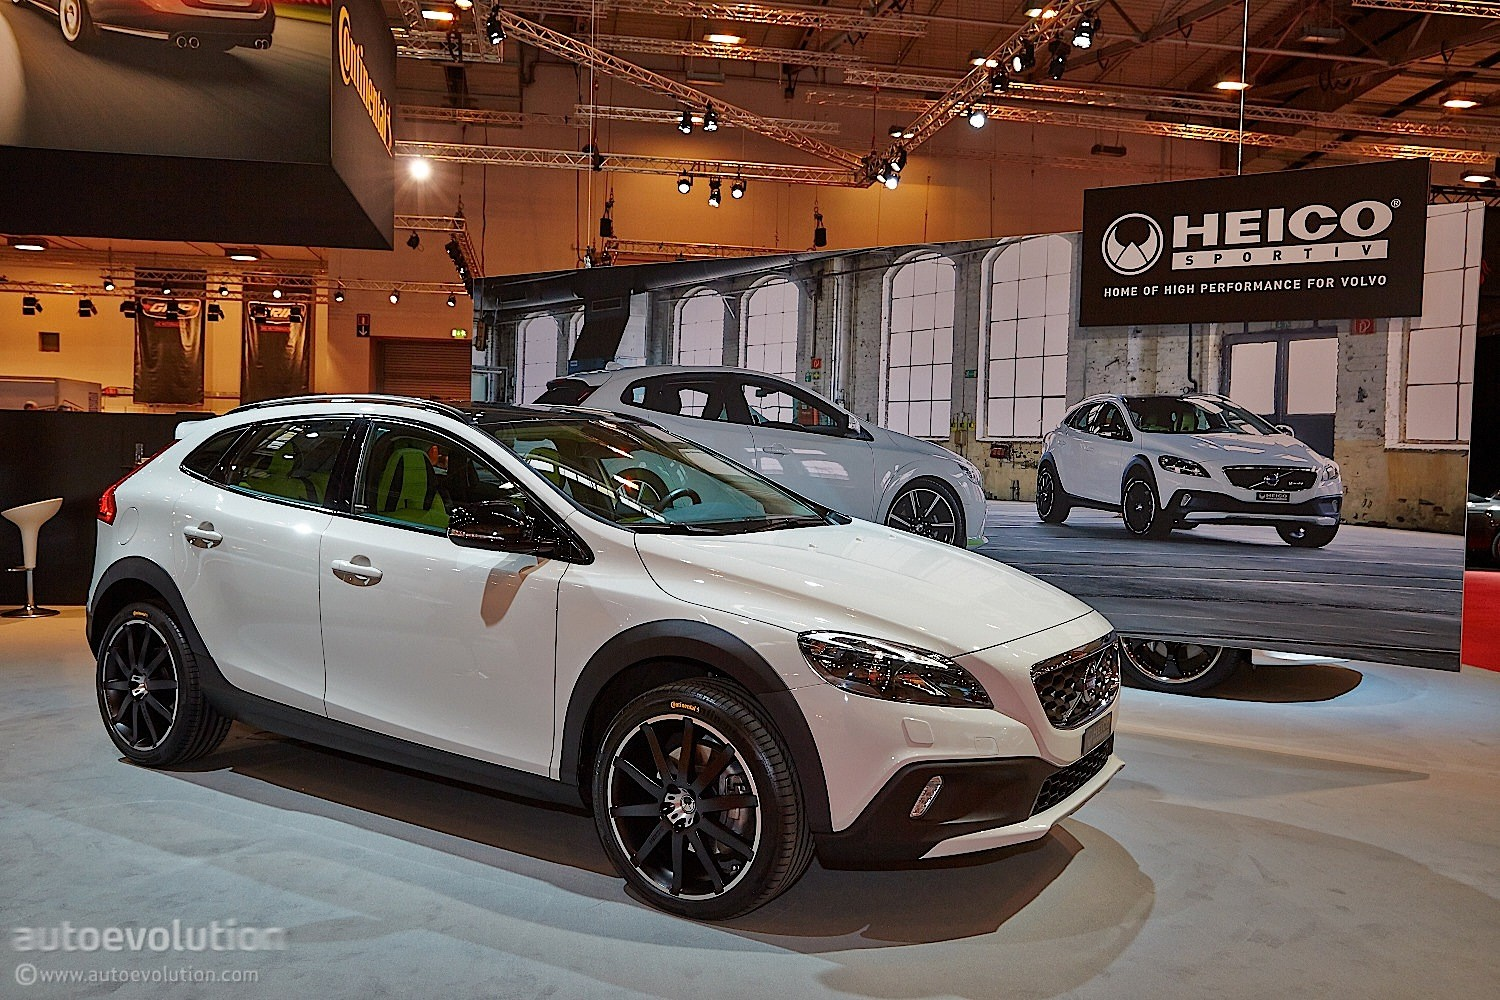 Heico Sportiv Xc Front as well Heico Sportiv Volvo Xc Presented likewise Volvo Tuner Heico Sportiv Brings A Trio Of Swedes At Essen Live Photos likewise Xc Volution V Titanium Front additionally Large. on heico volvo xc90